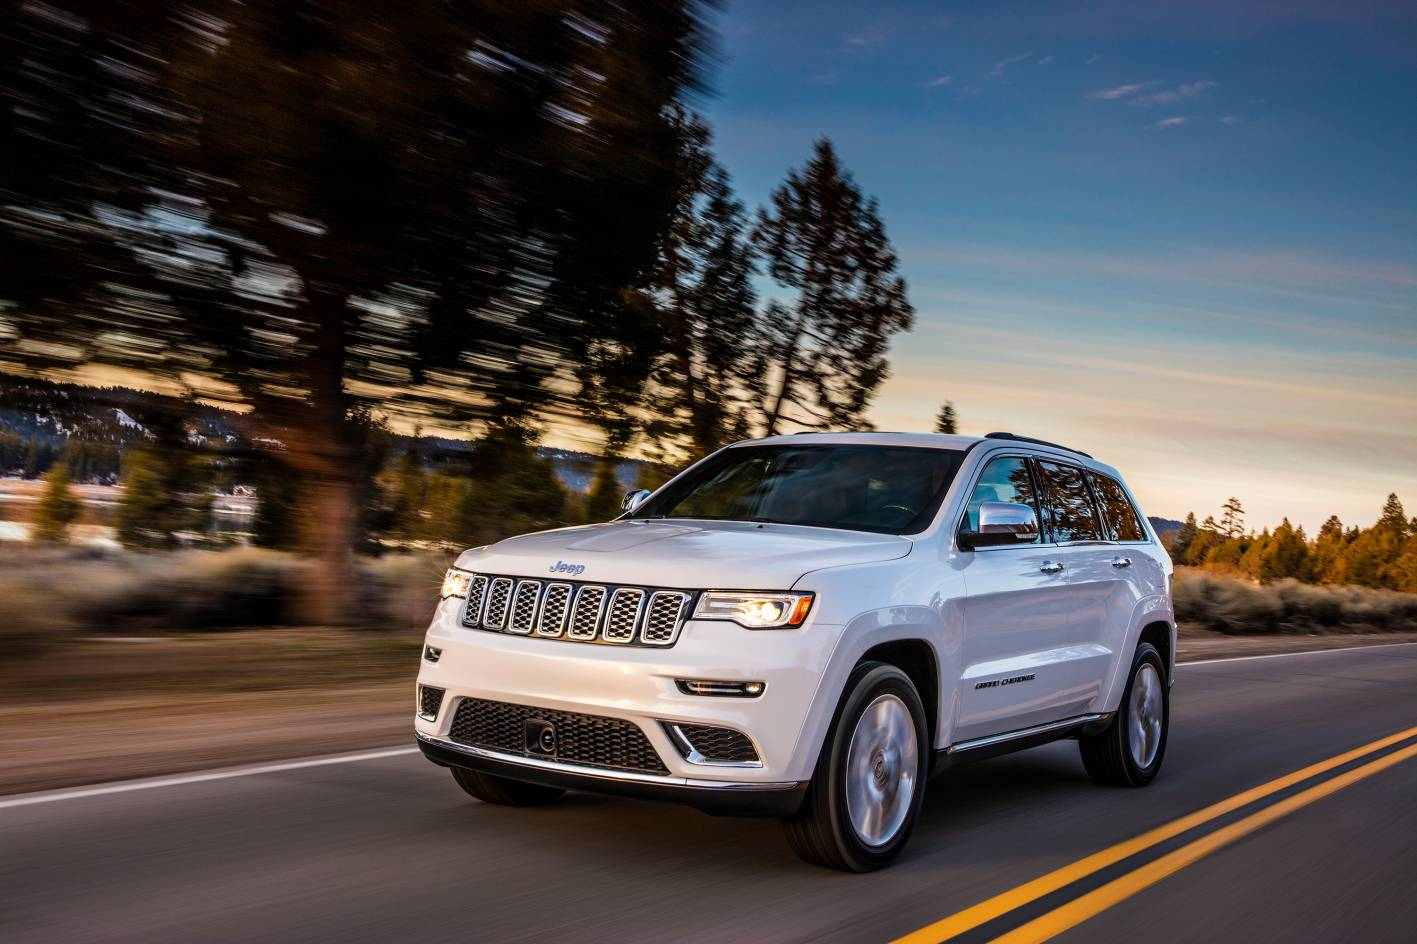 2017 Jeep Grand Cherokee Pricing and Specs